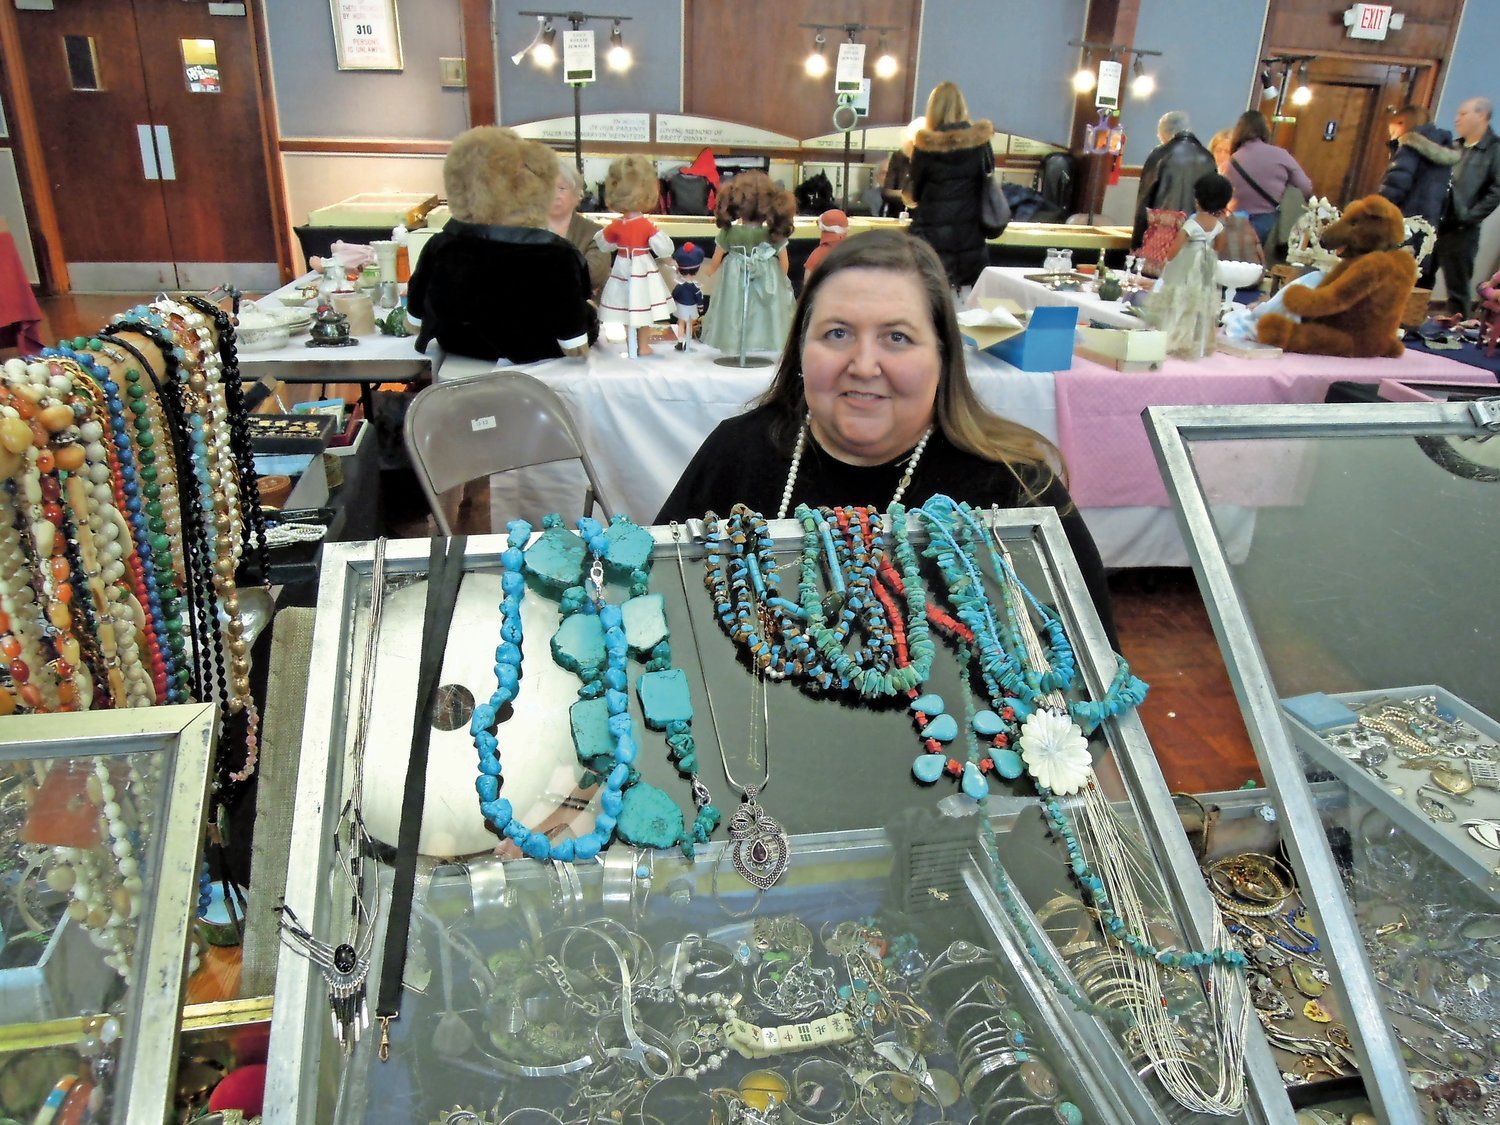 Karen Edeen, of East Marion, has sold at shows like the one at Temple B'nai Torah in Wantagh last Sunday for 30 years.